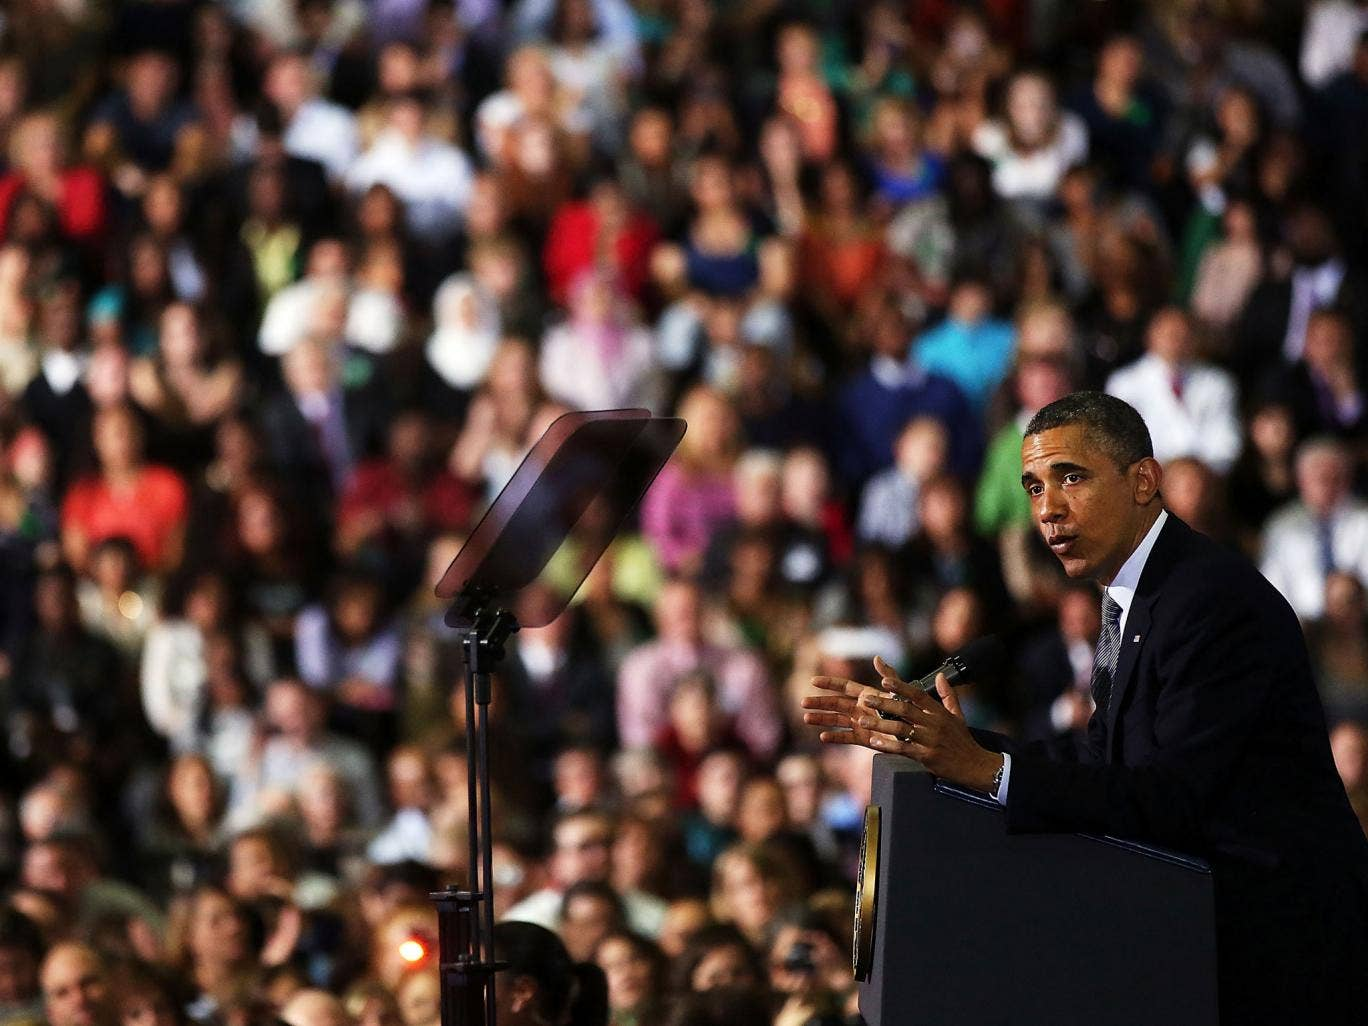 President Barack Obama delivers a speech on gun control at the University of Hartford